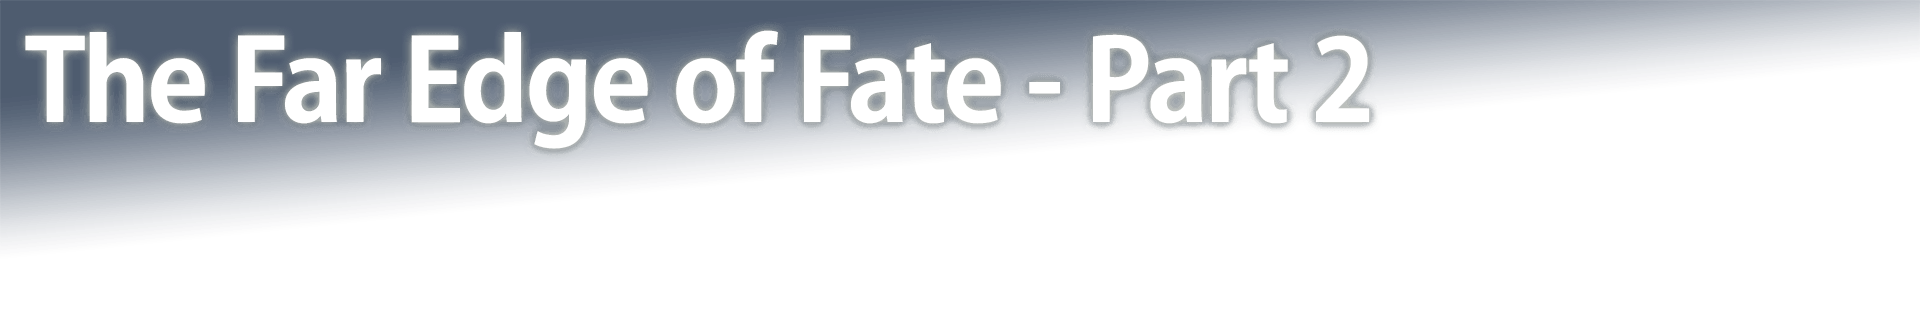 The Far Edge of Fate - Part 2